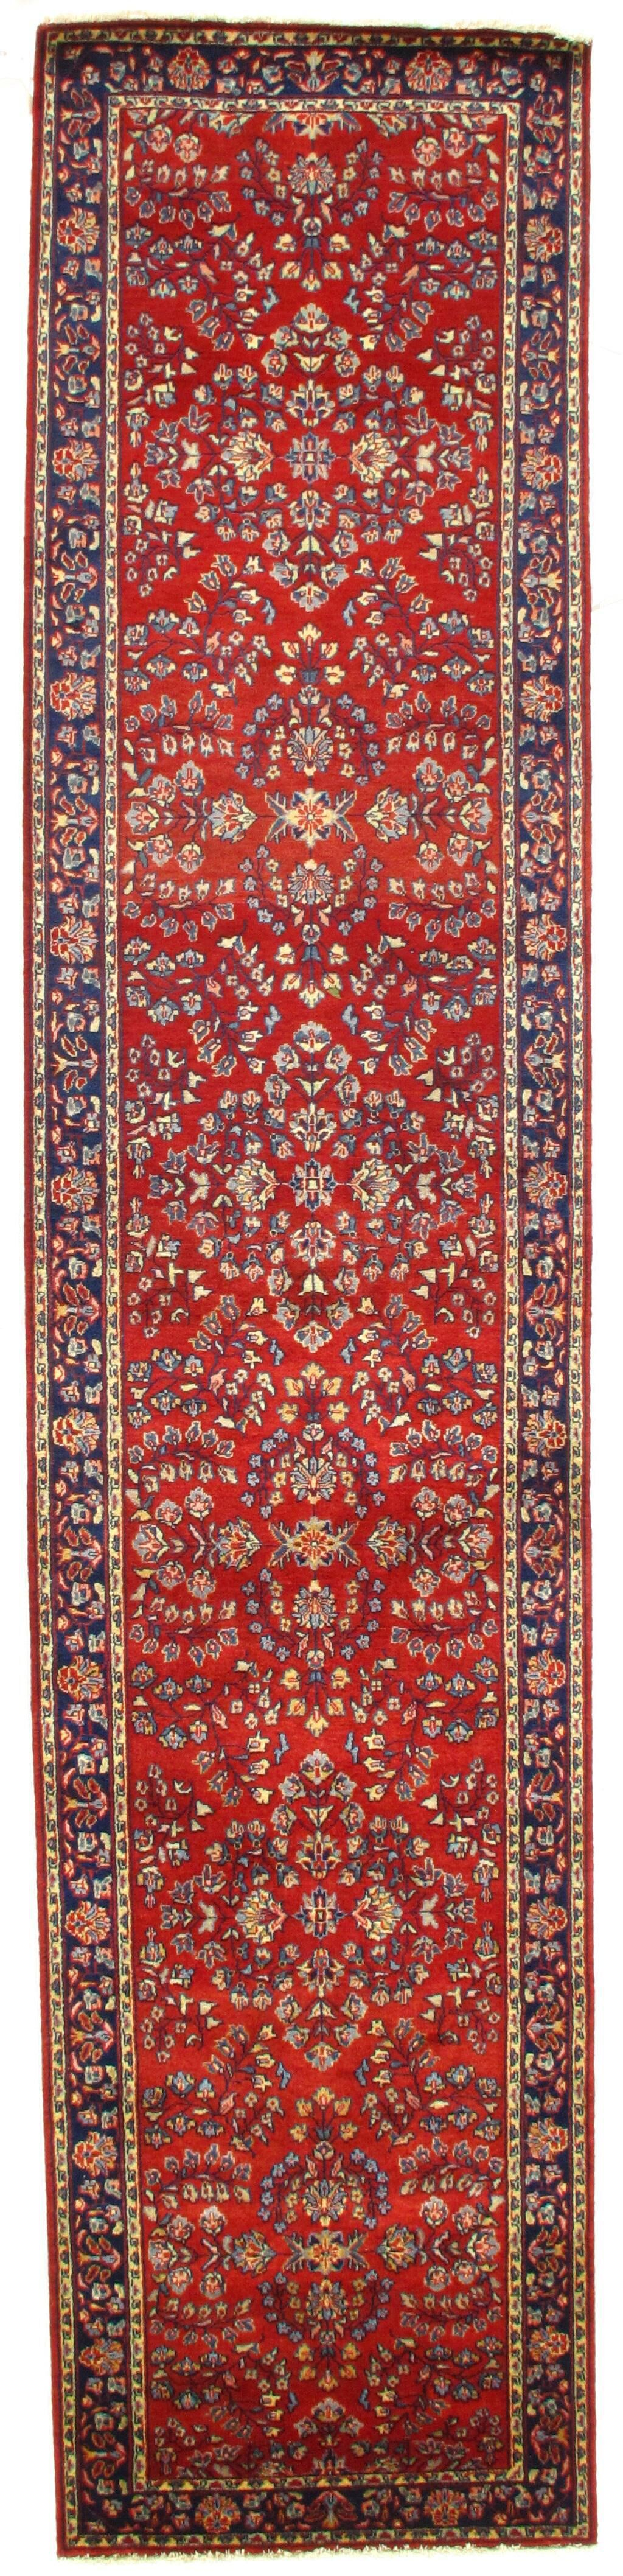 Sarouk Hand-Knotted Wool Red Area Rug